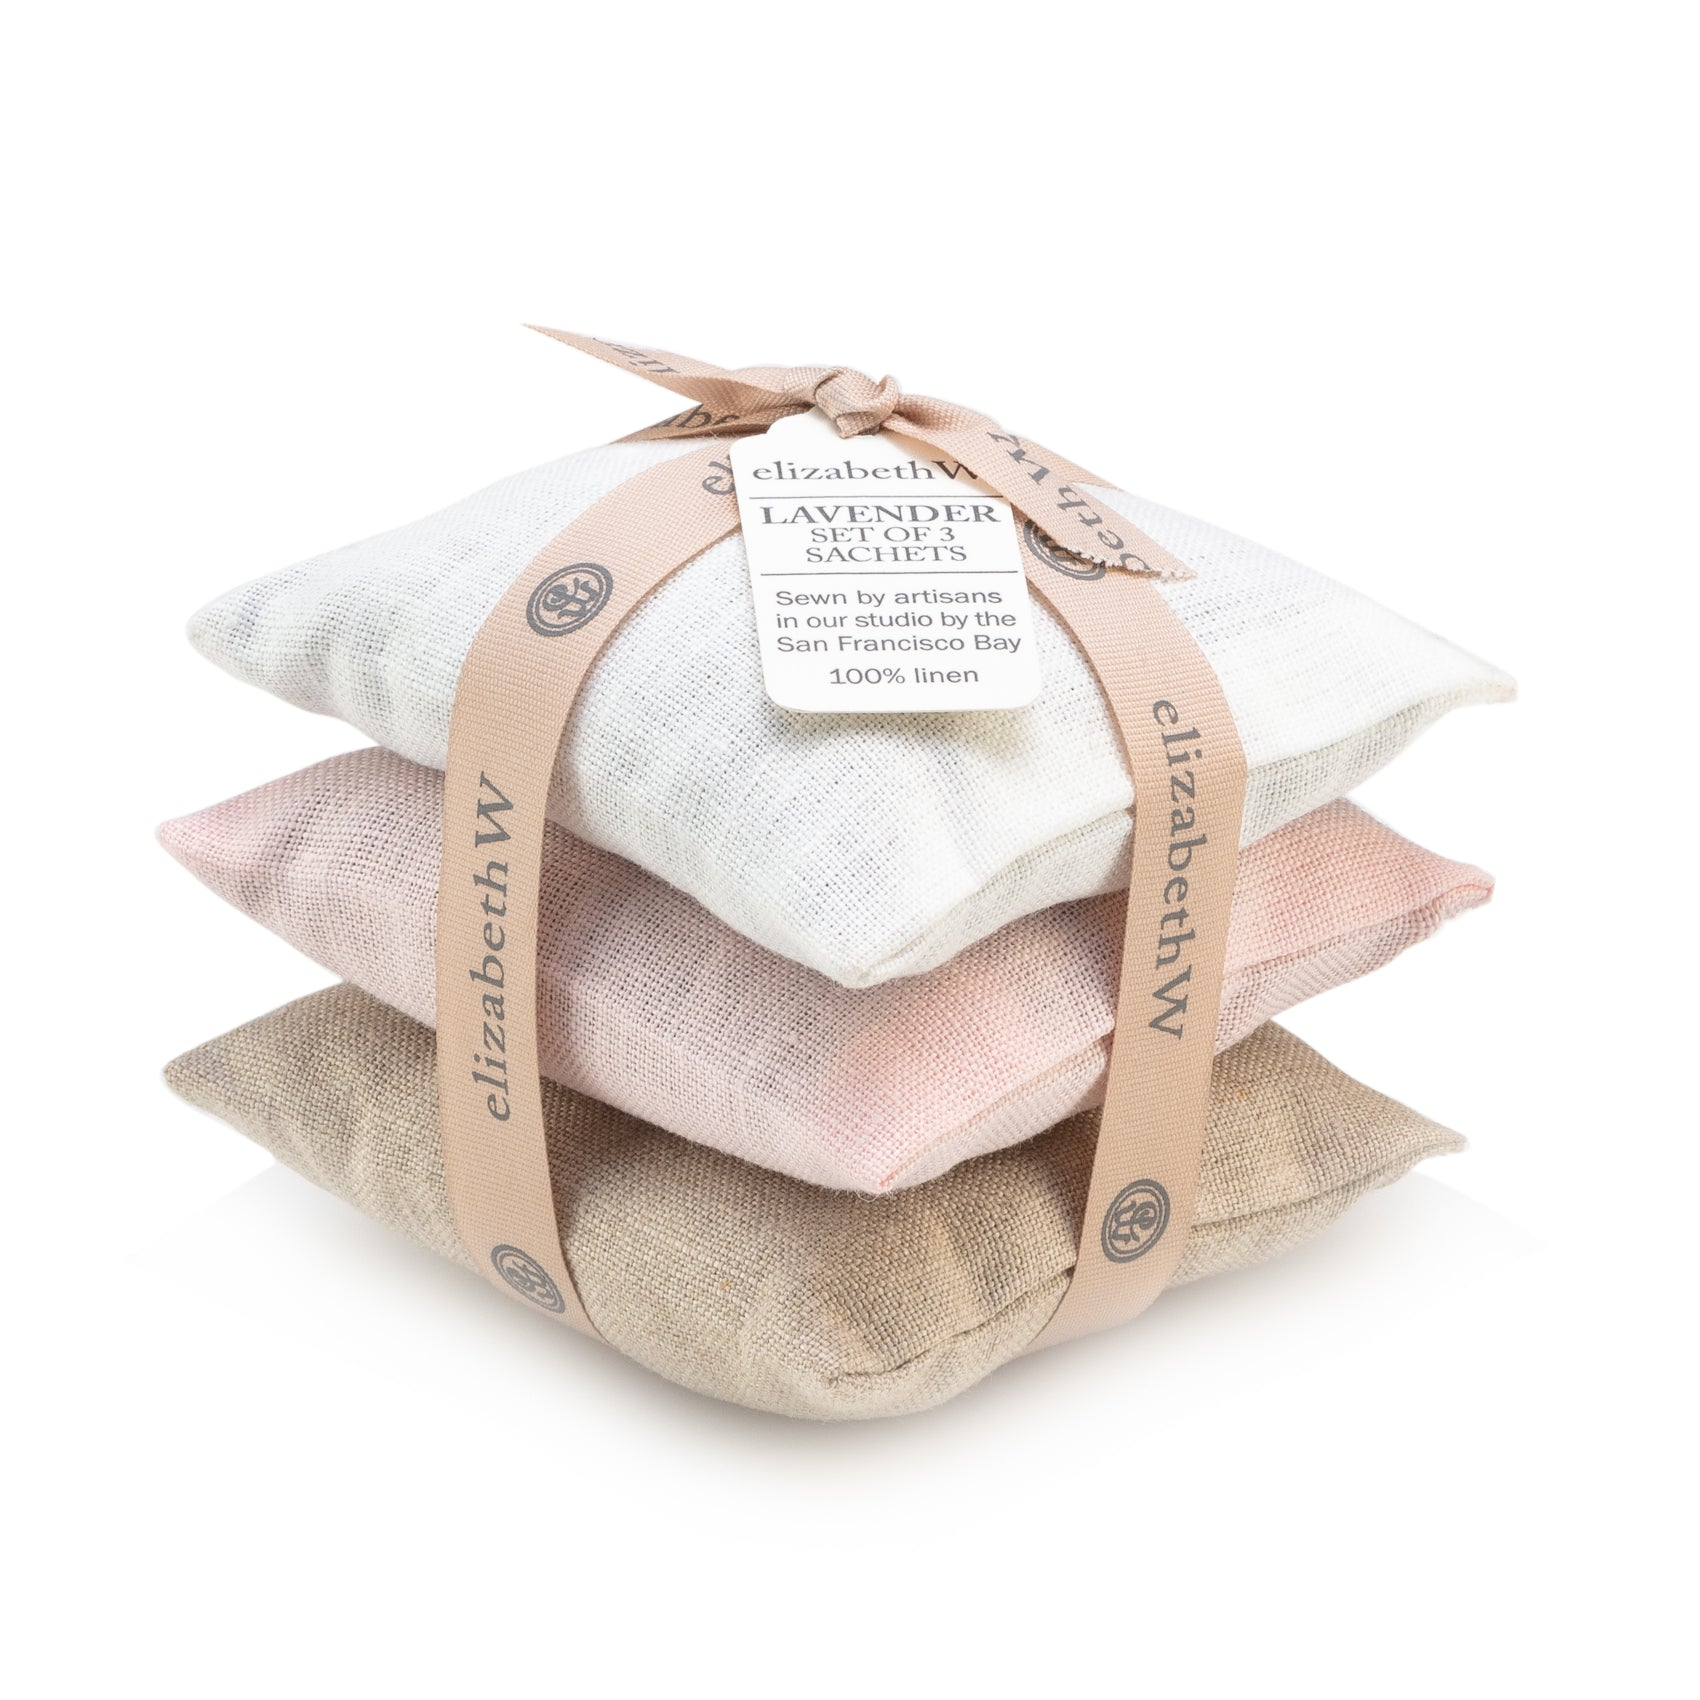 Ivory, Natural, Pink Linen Lavender Sachet Set of 3